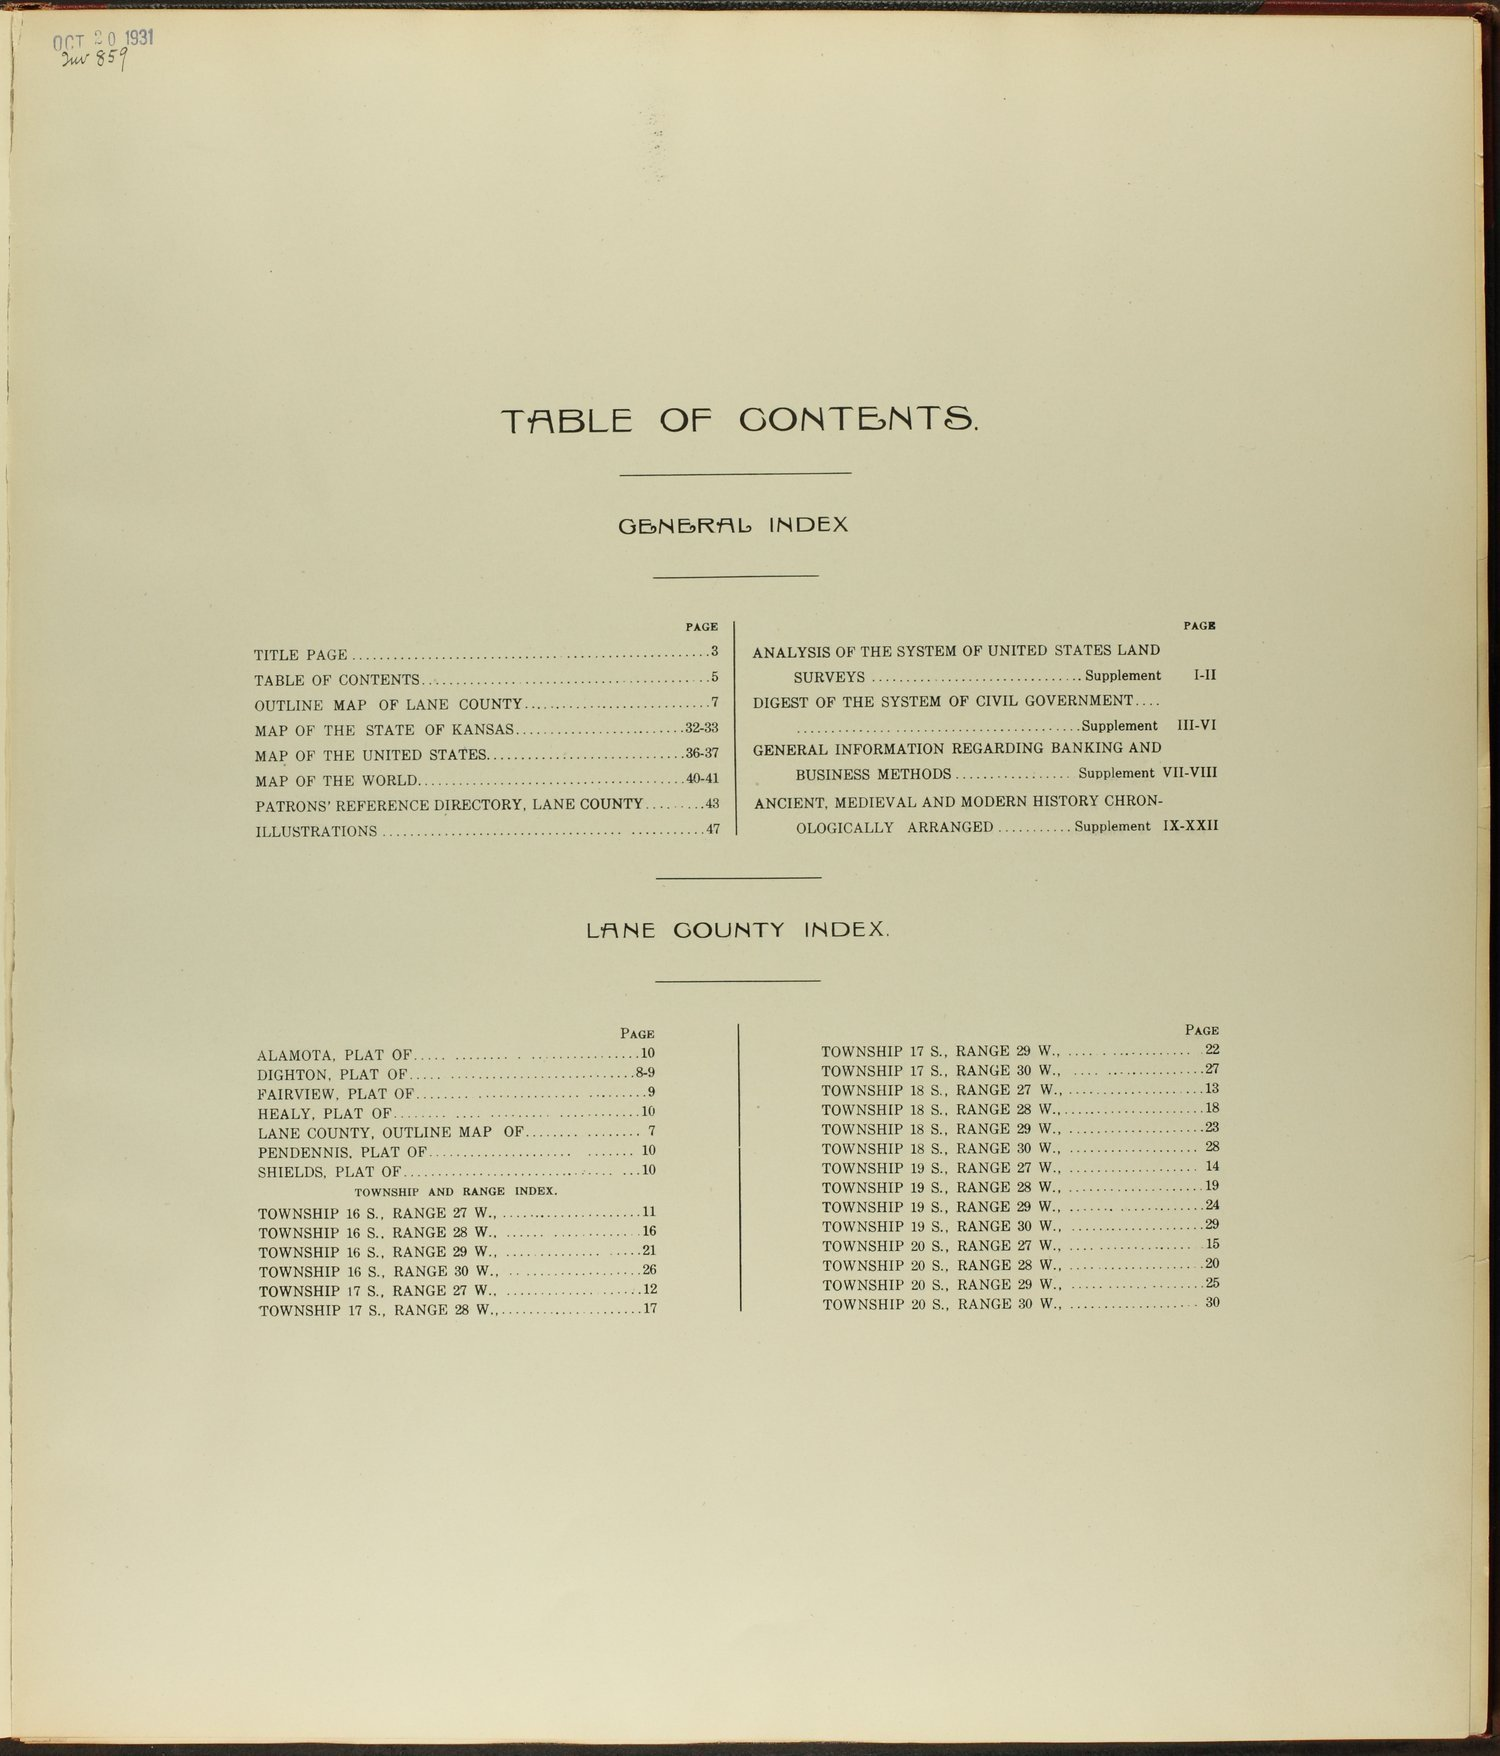 Standard atlas of Lane county, Kansas - Table of Contents